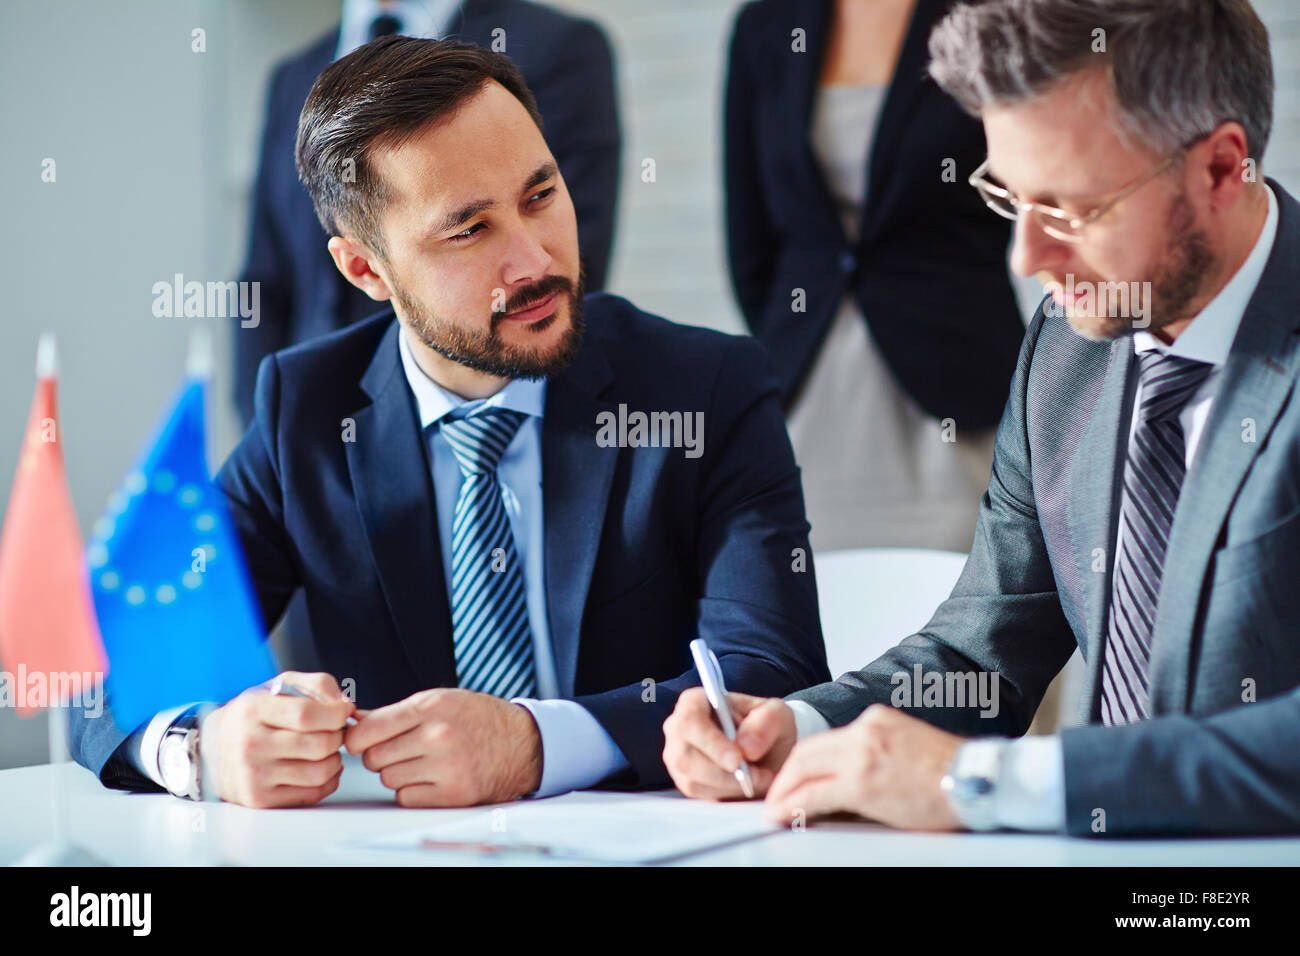 Two business leaders signing a contract at office - Stock Image